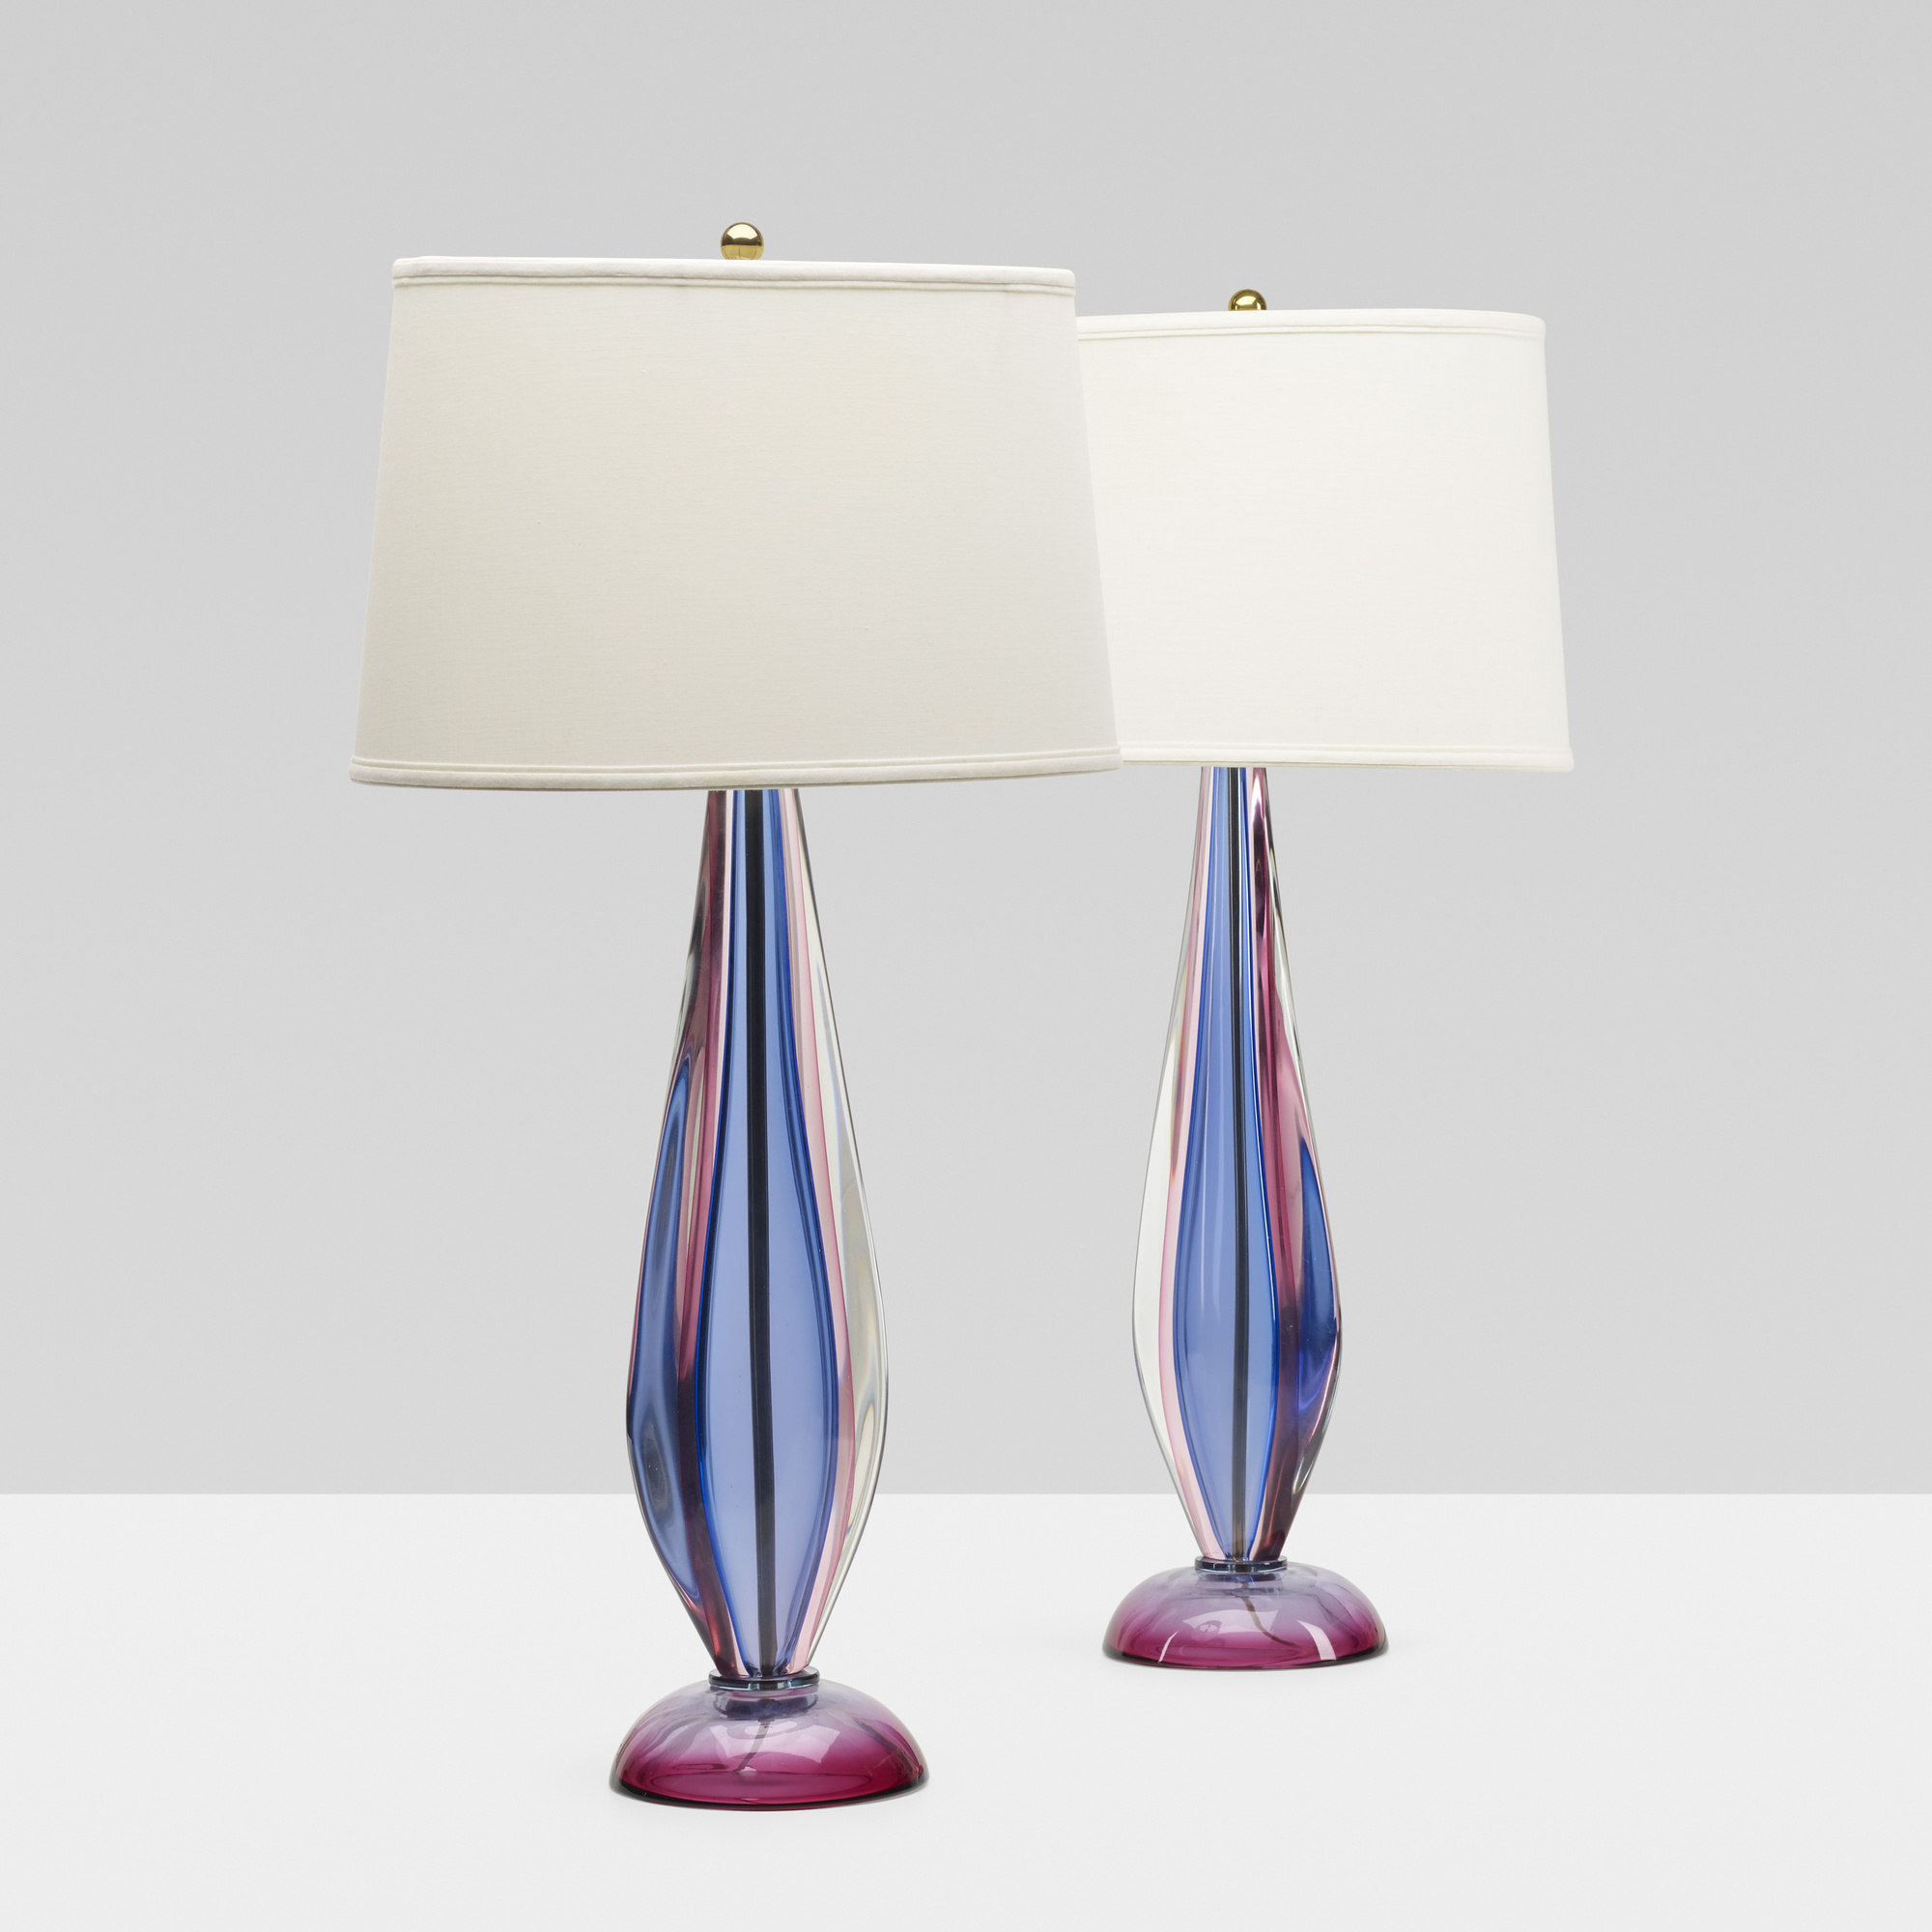 246: Archimede Seguso / table lamps, pair (1 of 3)